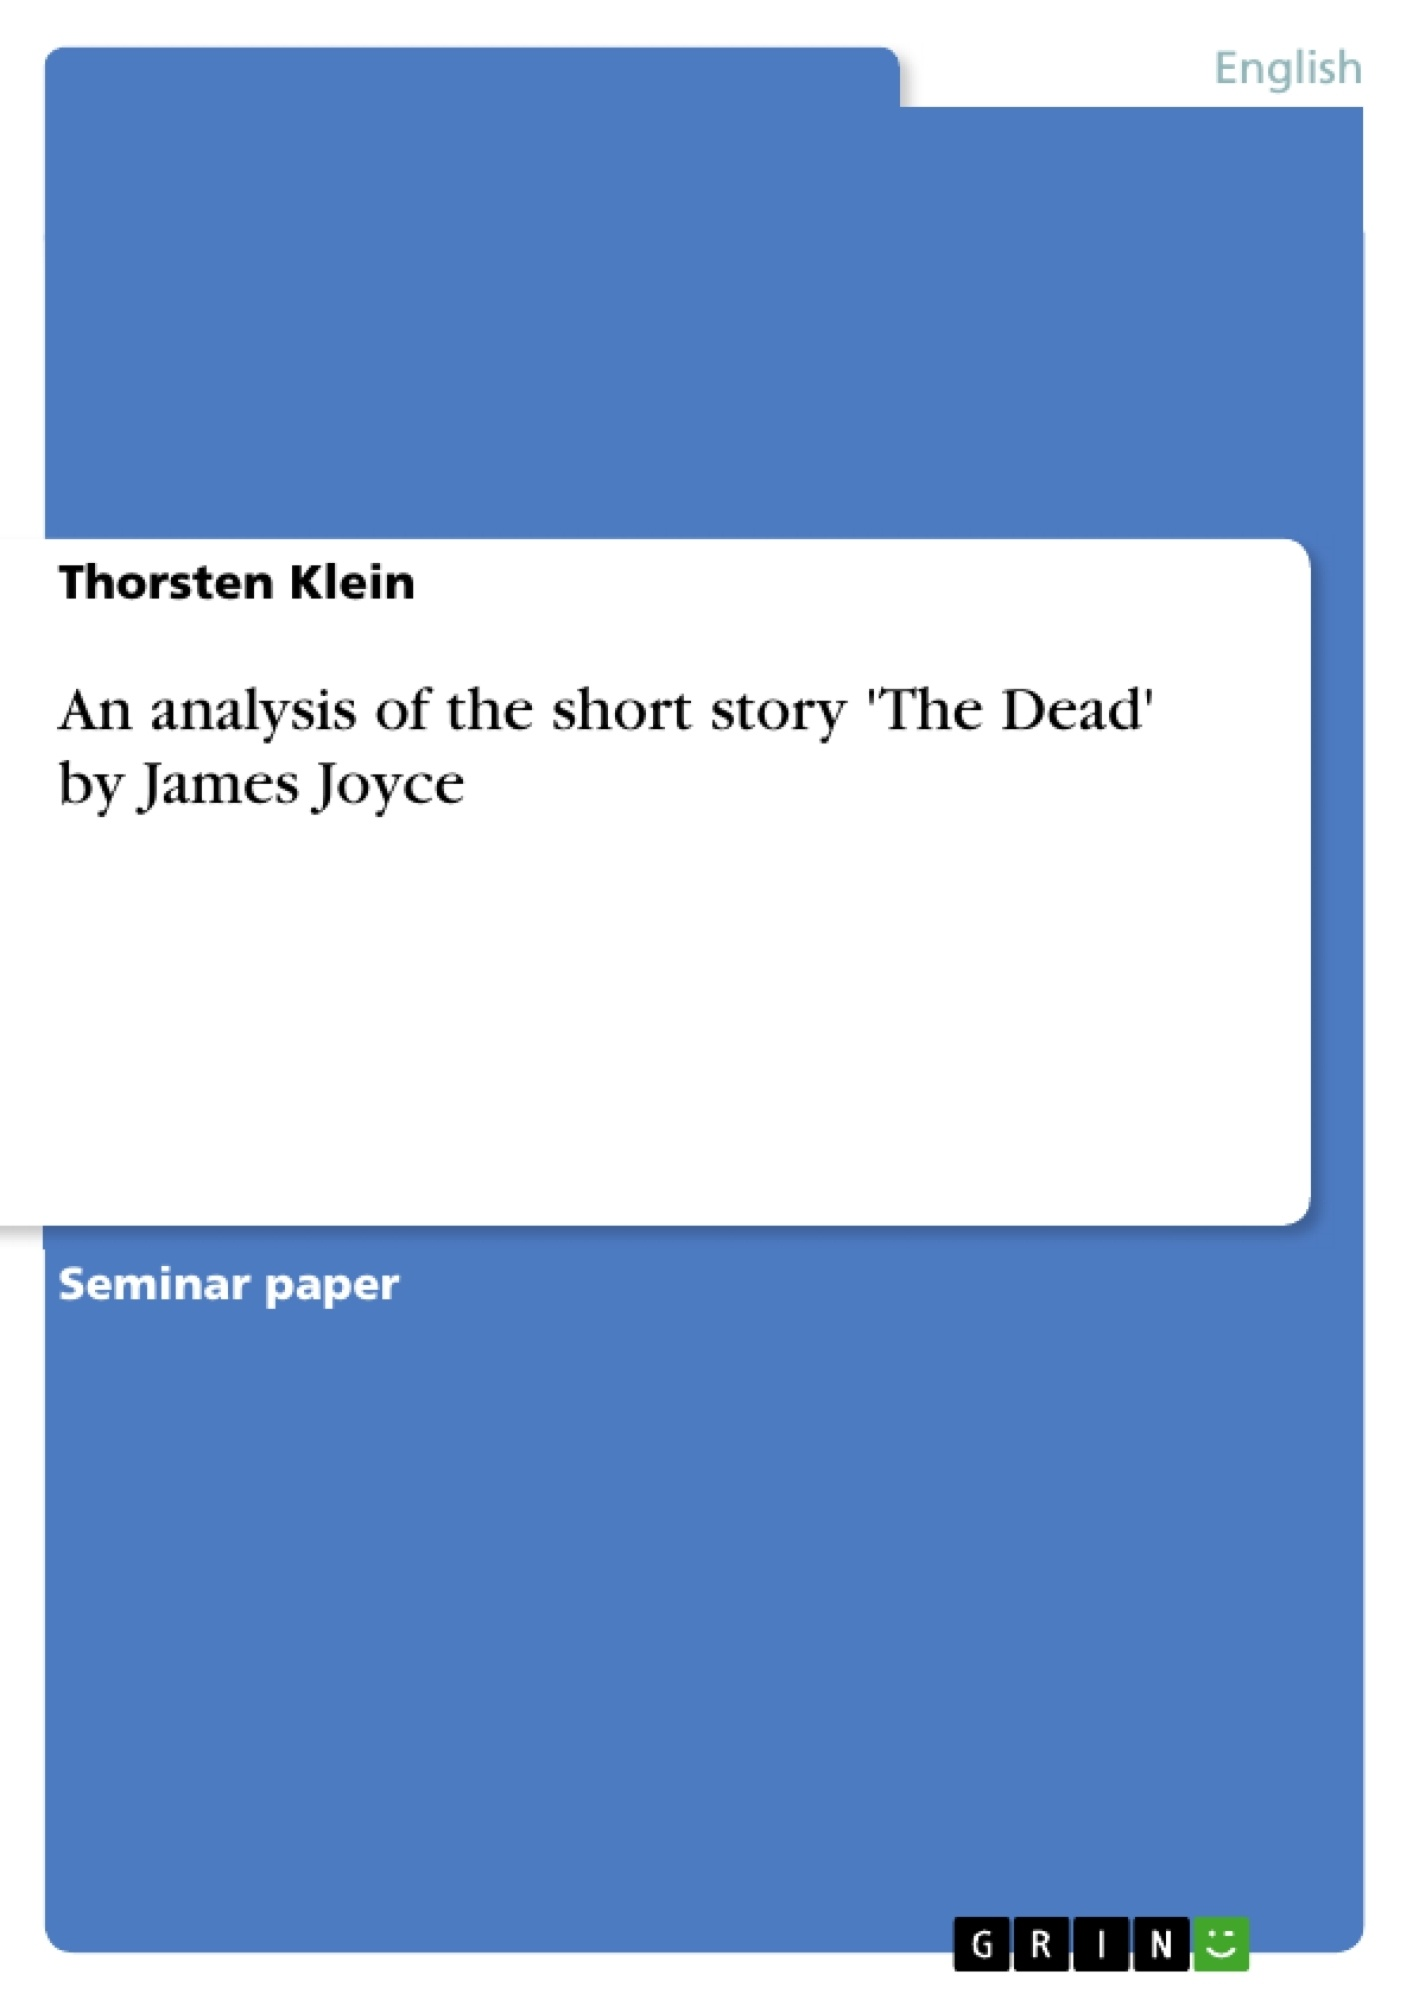 Title: An analysis of the short story 'The Dead' by James Joyce